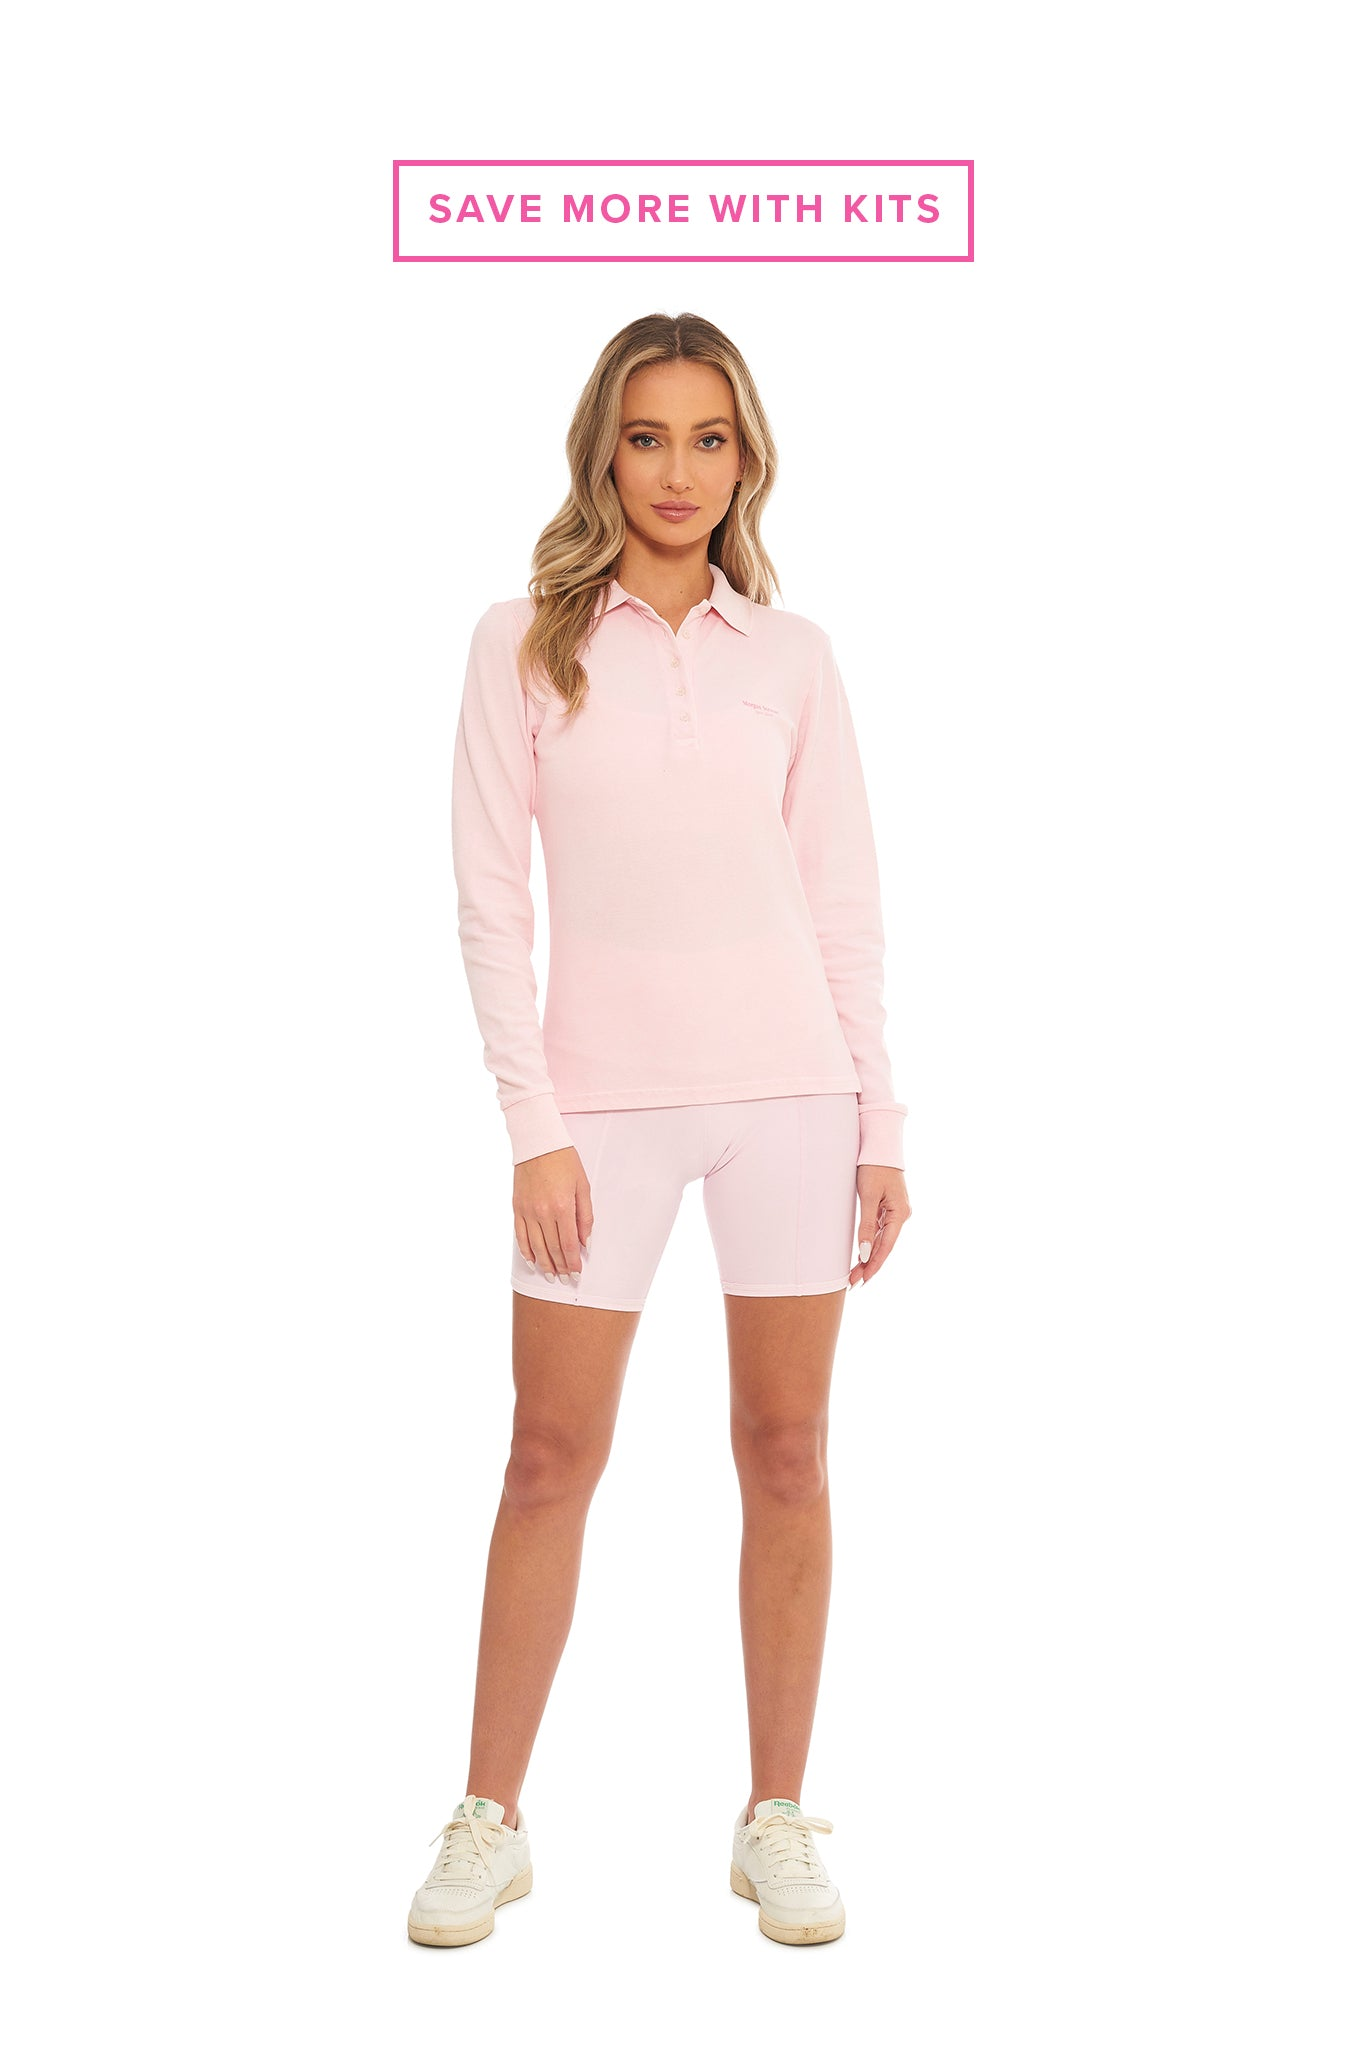 Bubblegum Long Sleeve Polo + Biker Shorts Kit